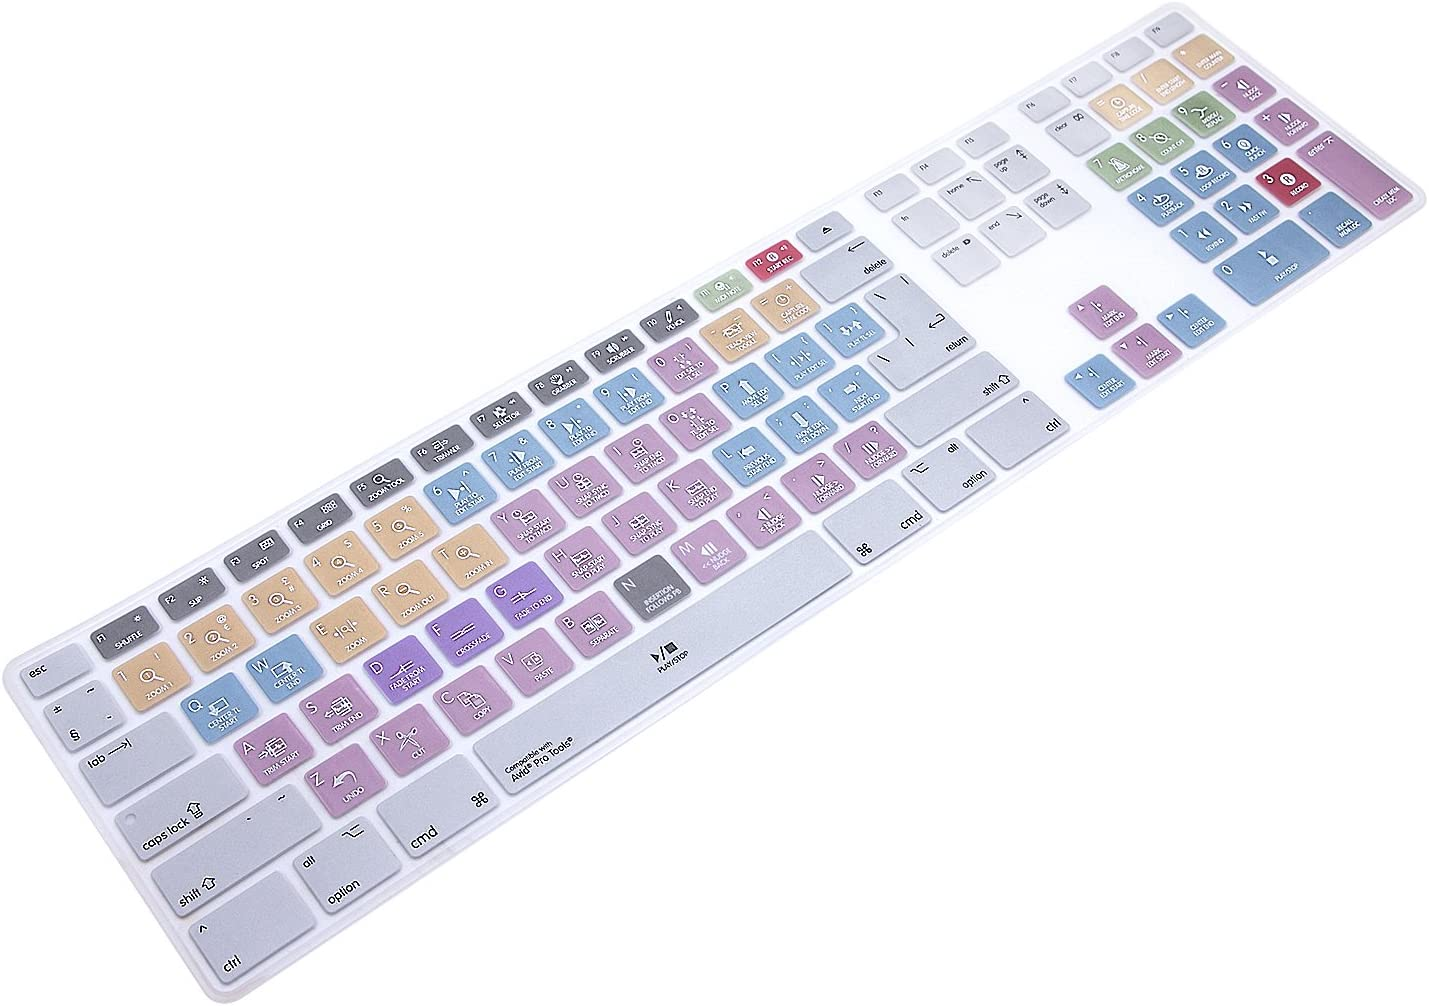 WYGCH Ultra Thin Shortcuts Extended Silicone Keyboard Protective Cover Skin for Apple Mac Aluminum Wired Keyboard MB110LL/B (A1243) Numeric Keypad (for Avid Pro Tools)